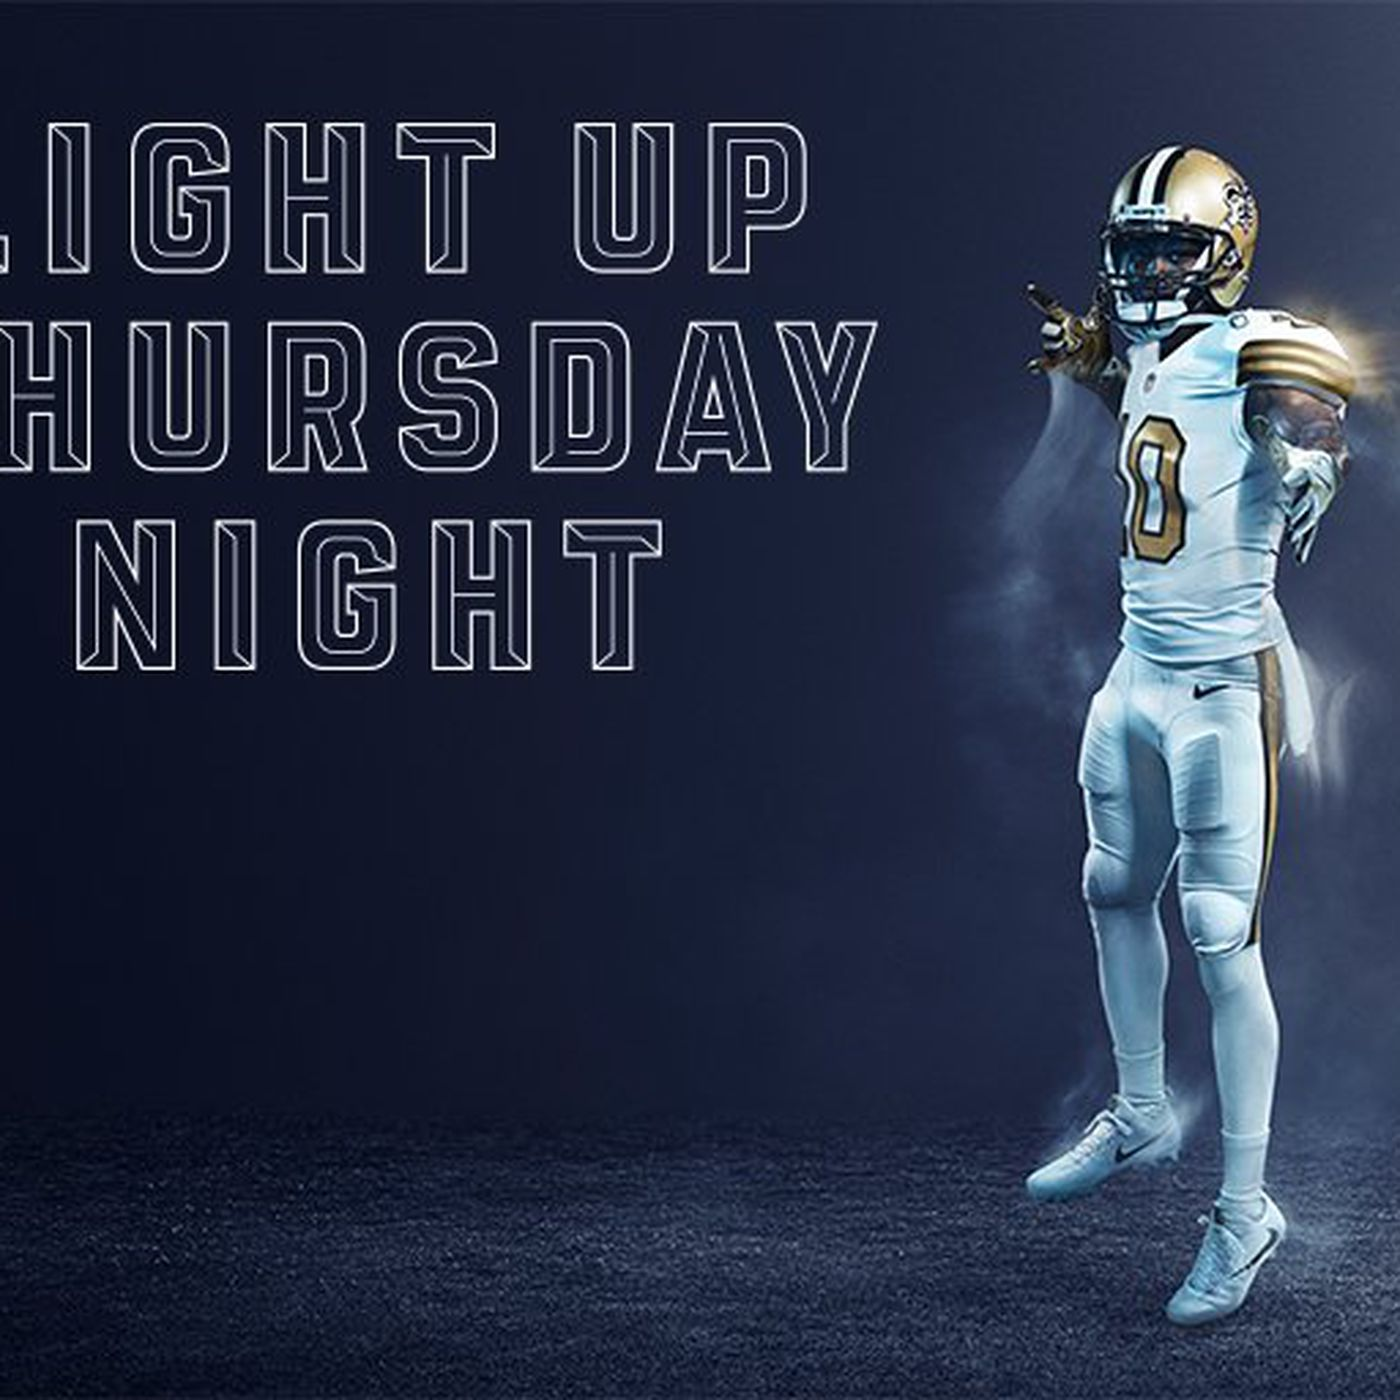 New Orleans Saints Nike Unveil Color Rush Uniforms Canal